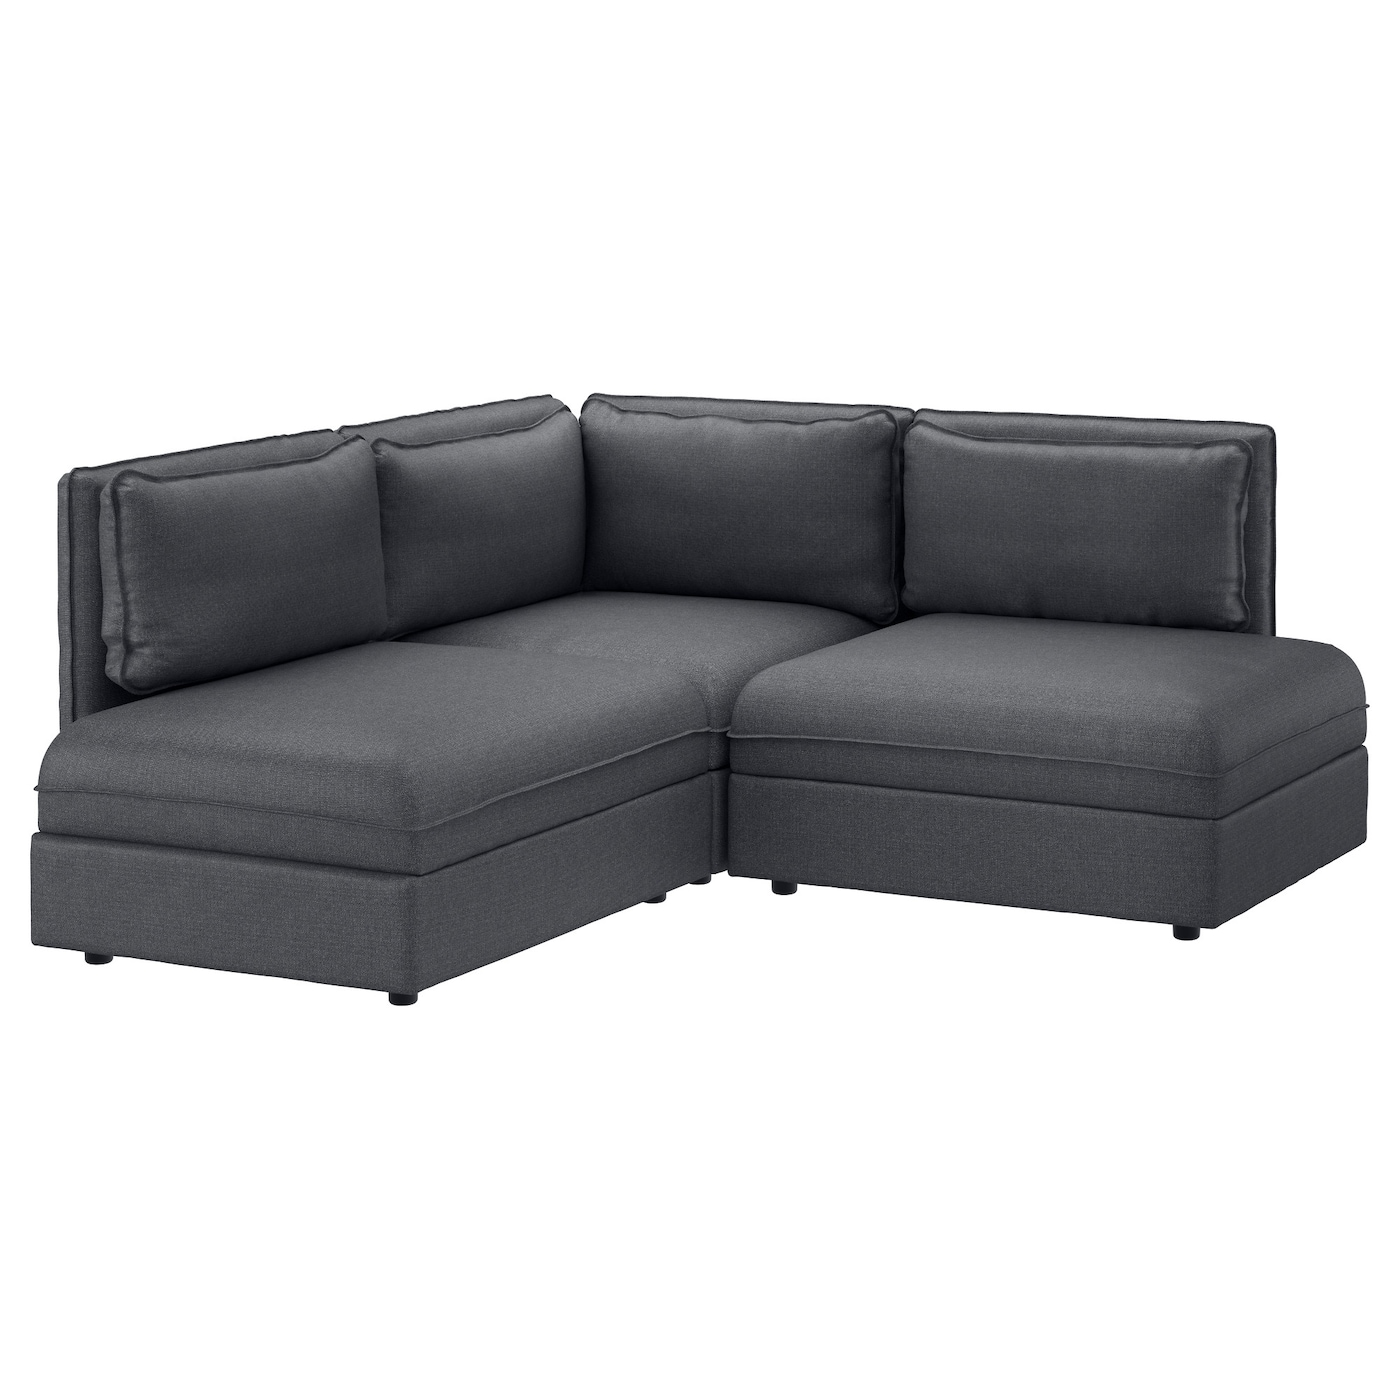 Vallentuna 3 Seat Corner Sofa Hillared Dark Grey Ikea